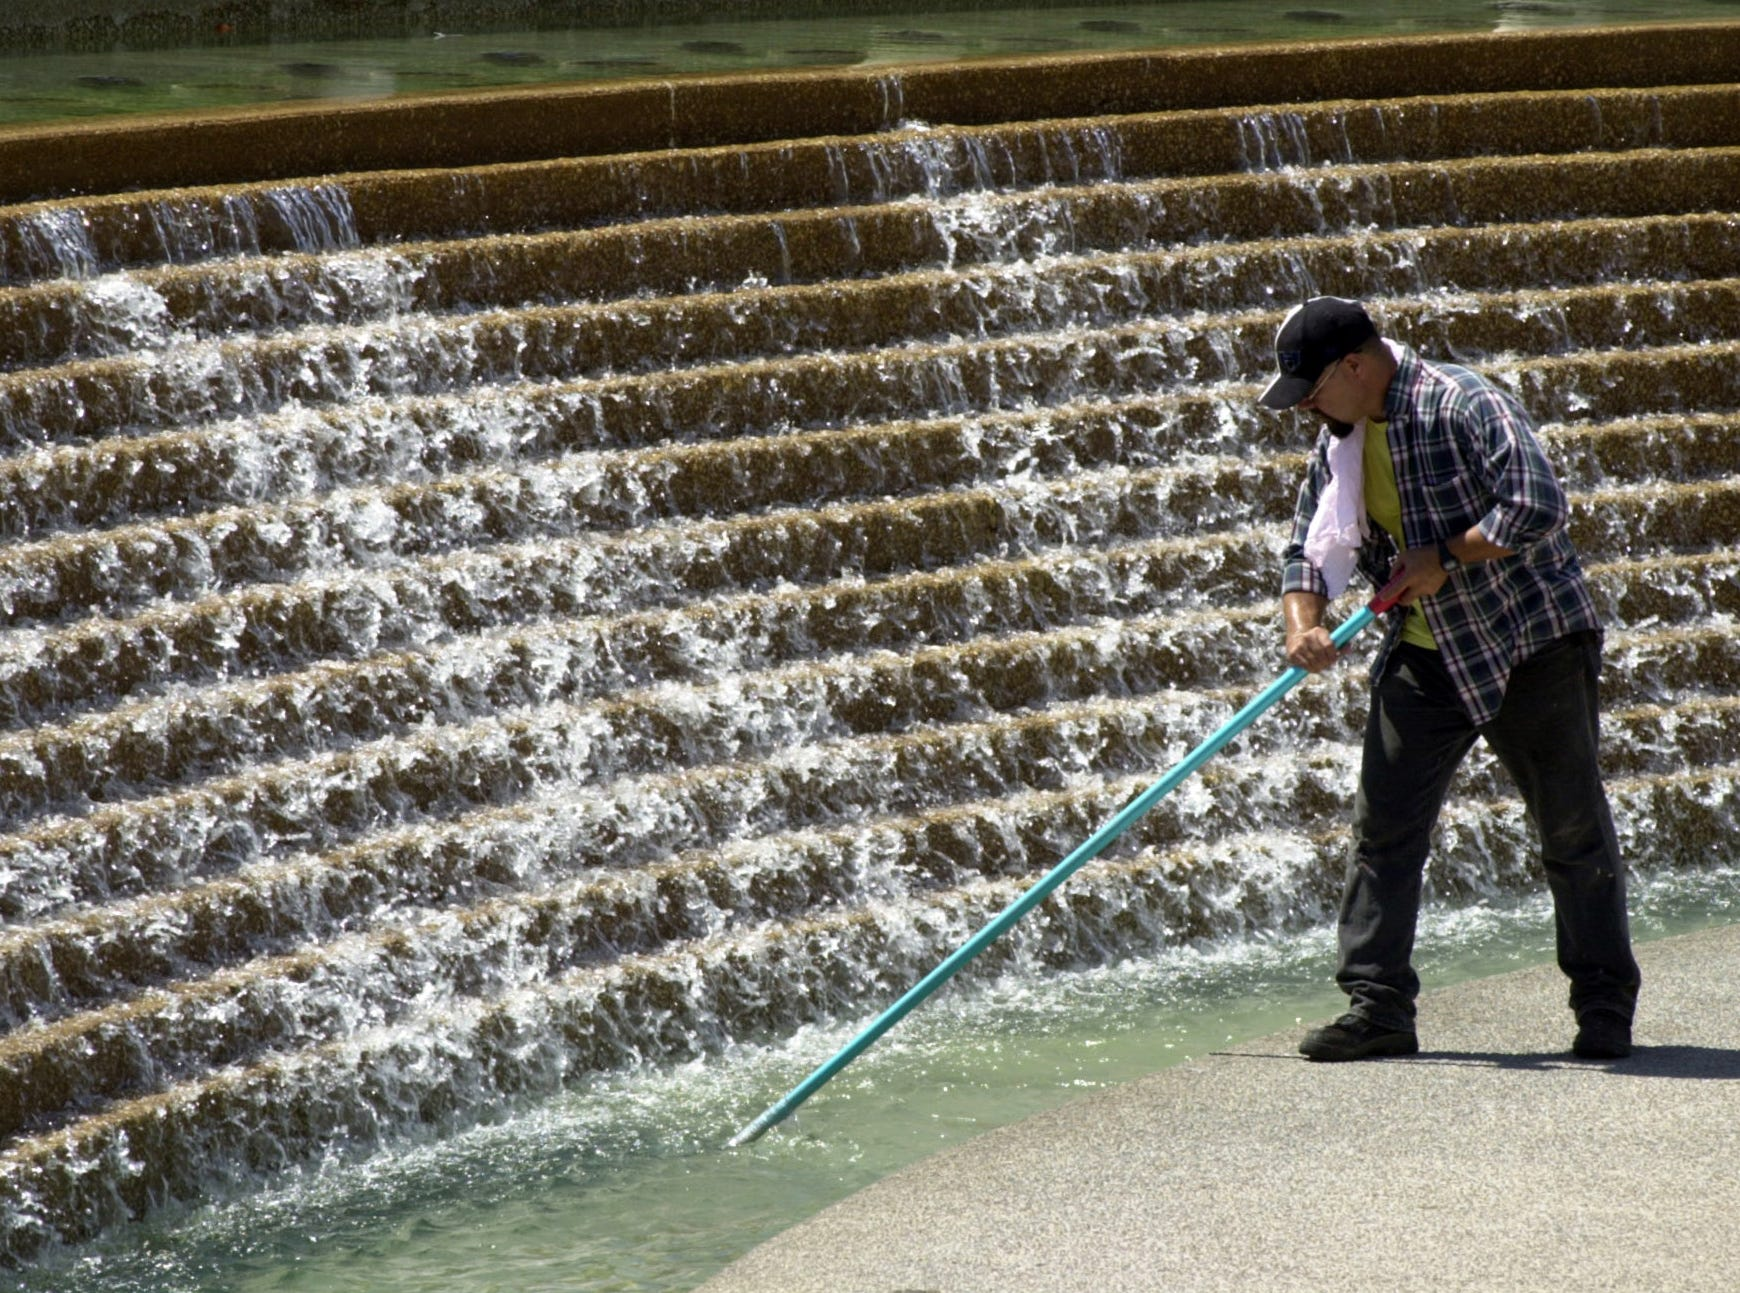 Deputy City Manager Skip Noe said in July 2001 that when reservoir levels drop below 30 percent, the City Council could consider cutting off the water at the Corpus Christi Watergarden.